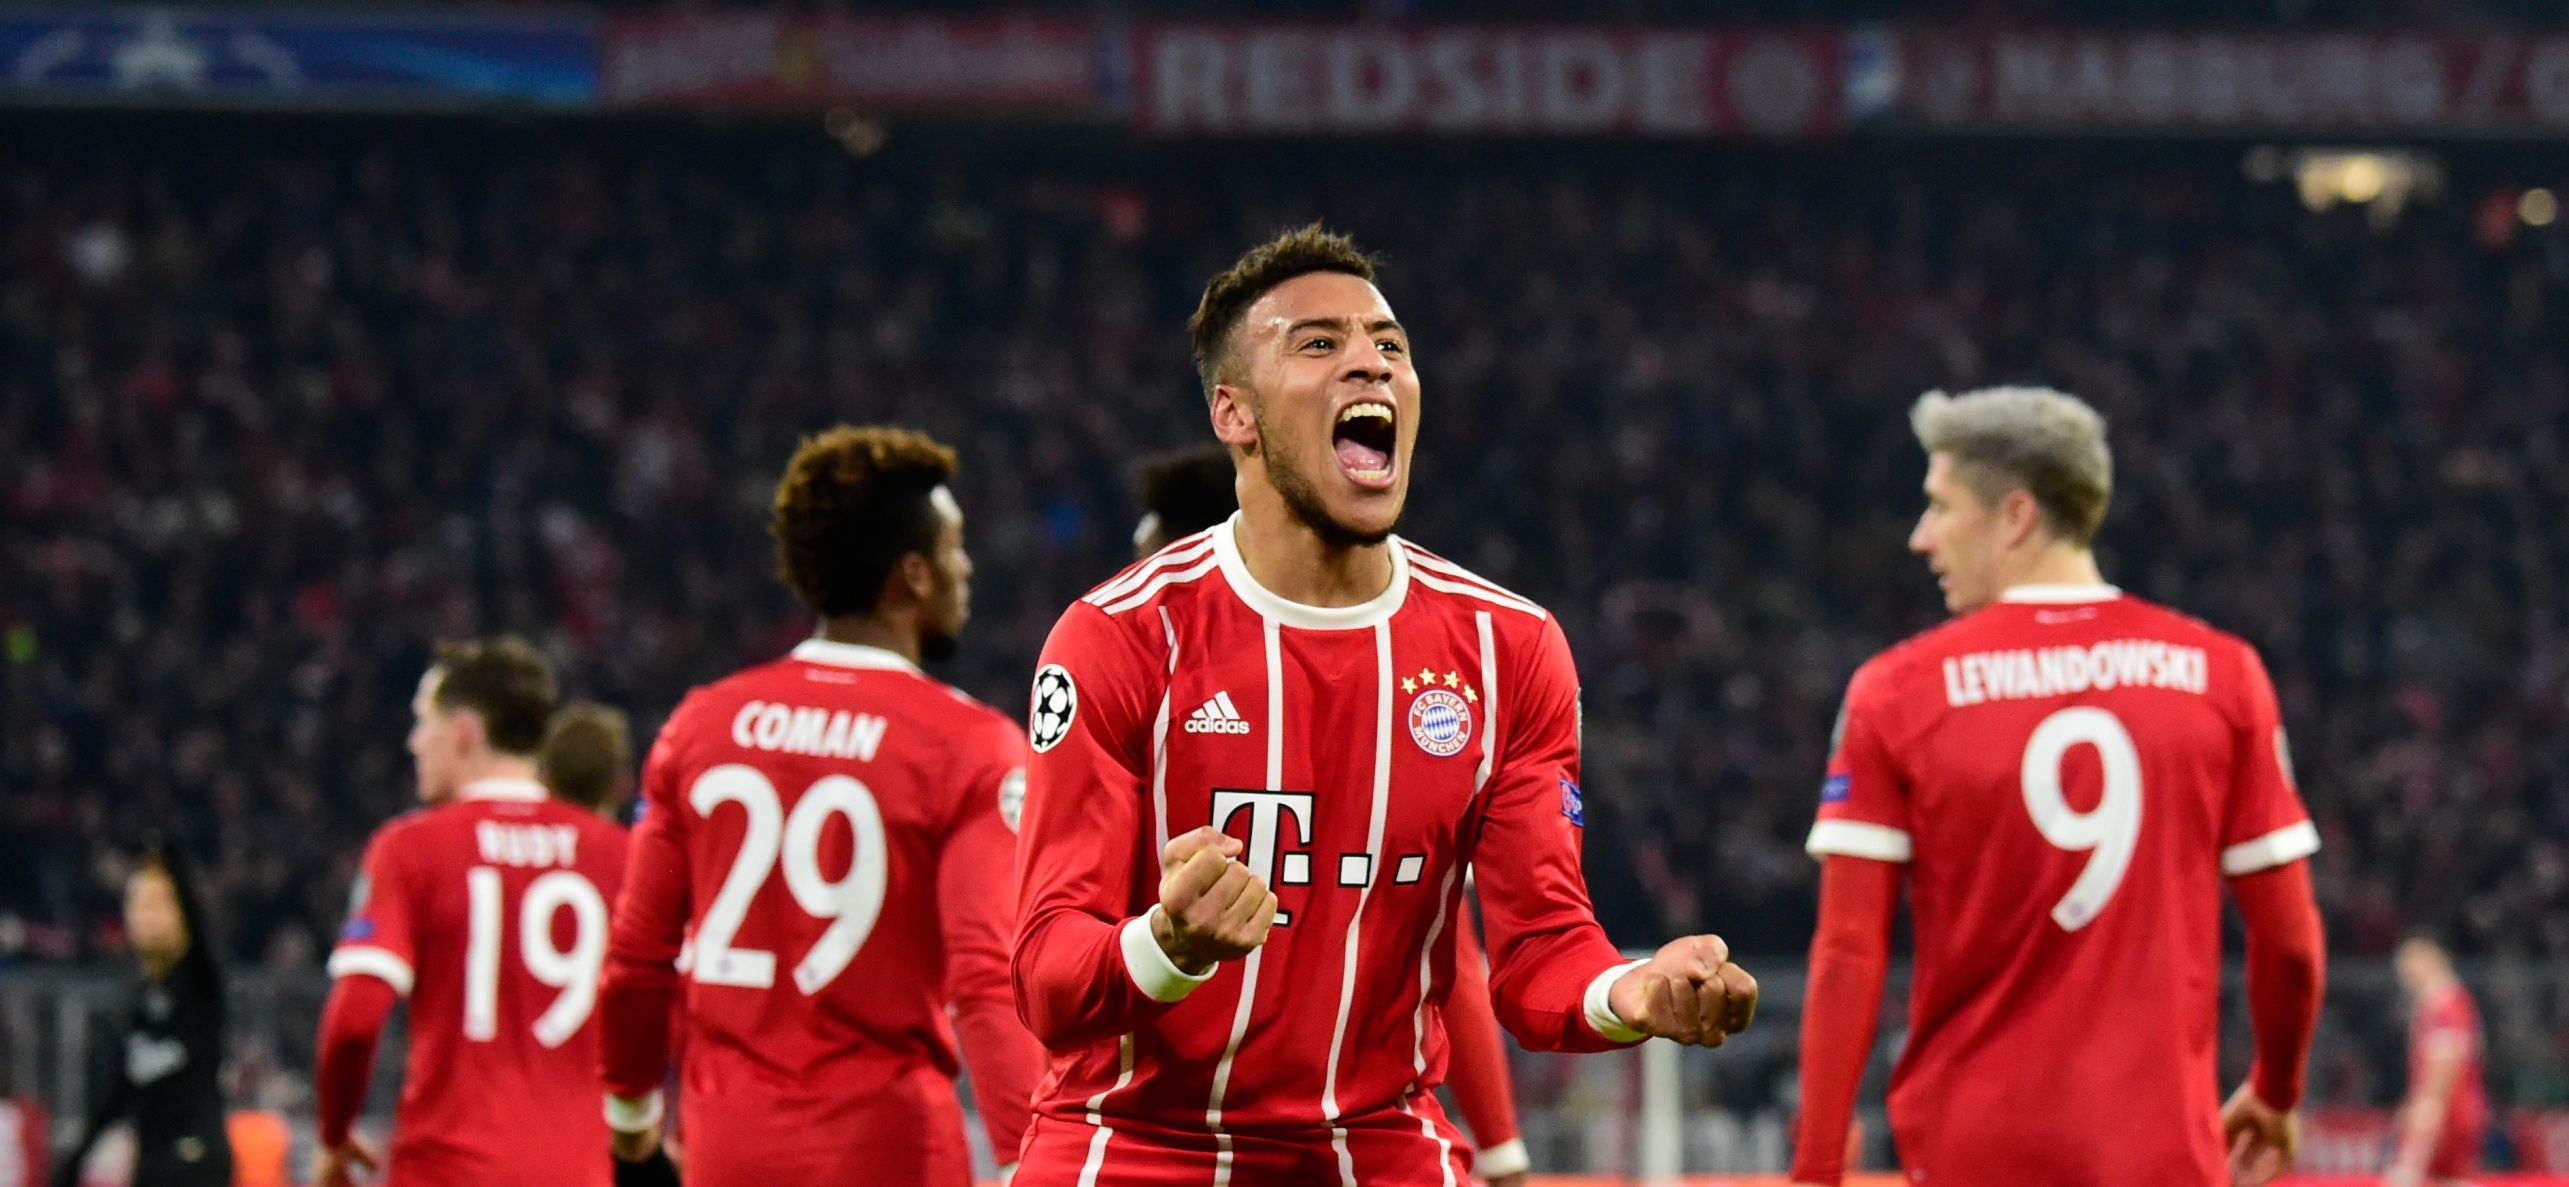 [Ligue des champions] Bayern Munich – Paris Saint-Germain : les notes